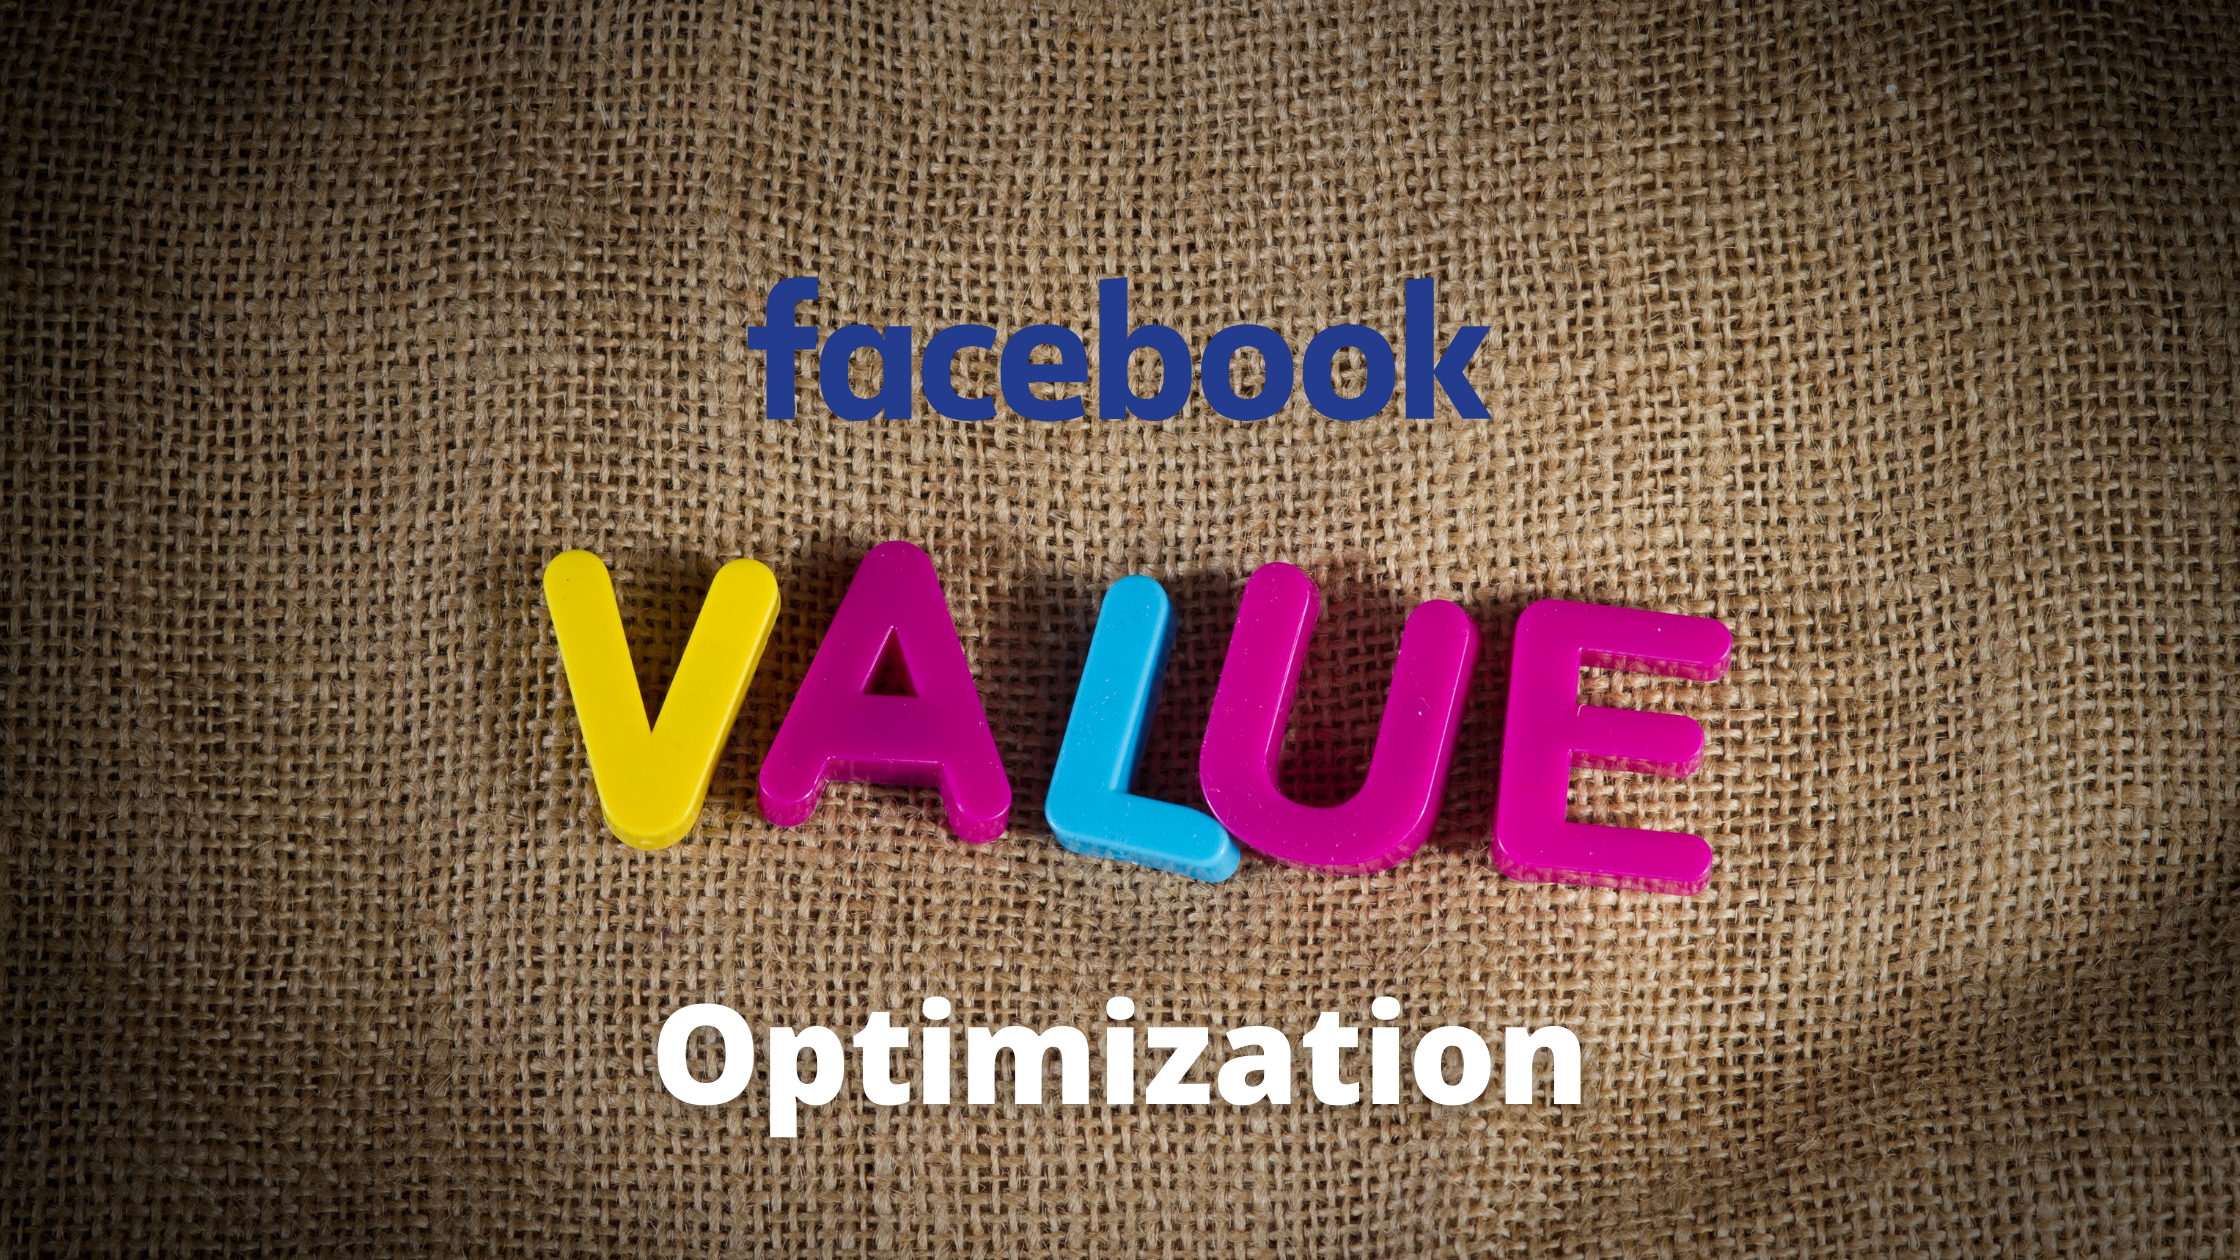 Value Optimization su Facebook Ads: cos'è e come funziona